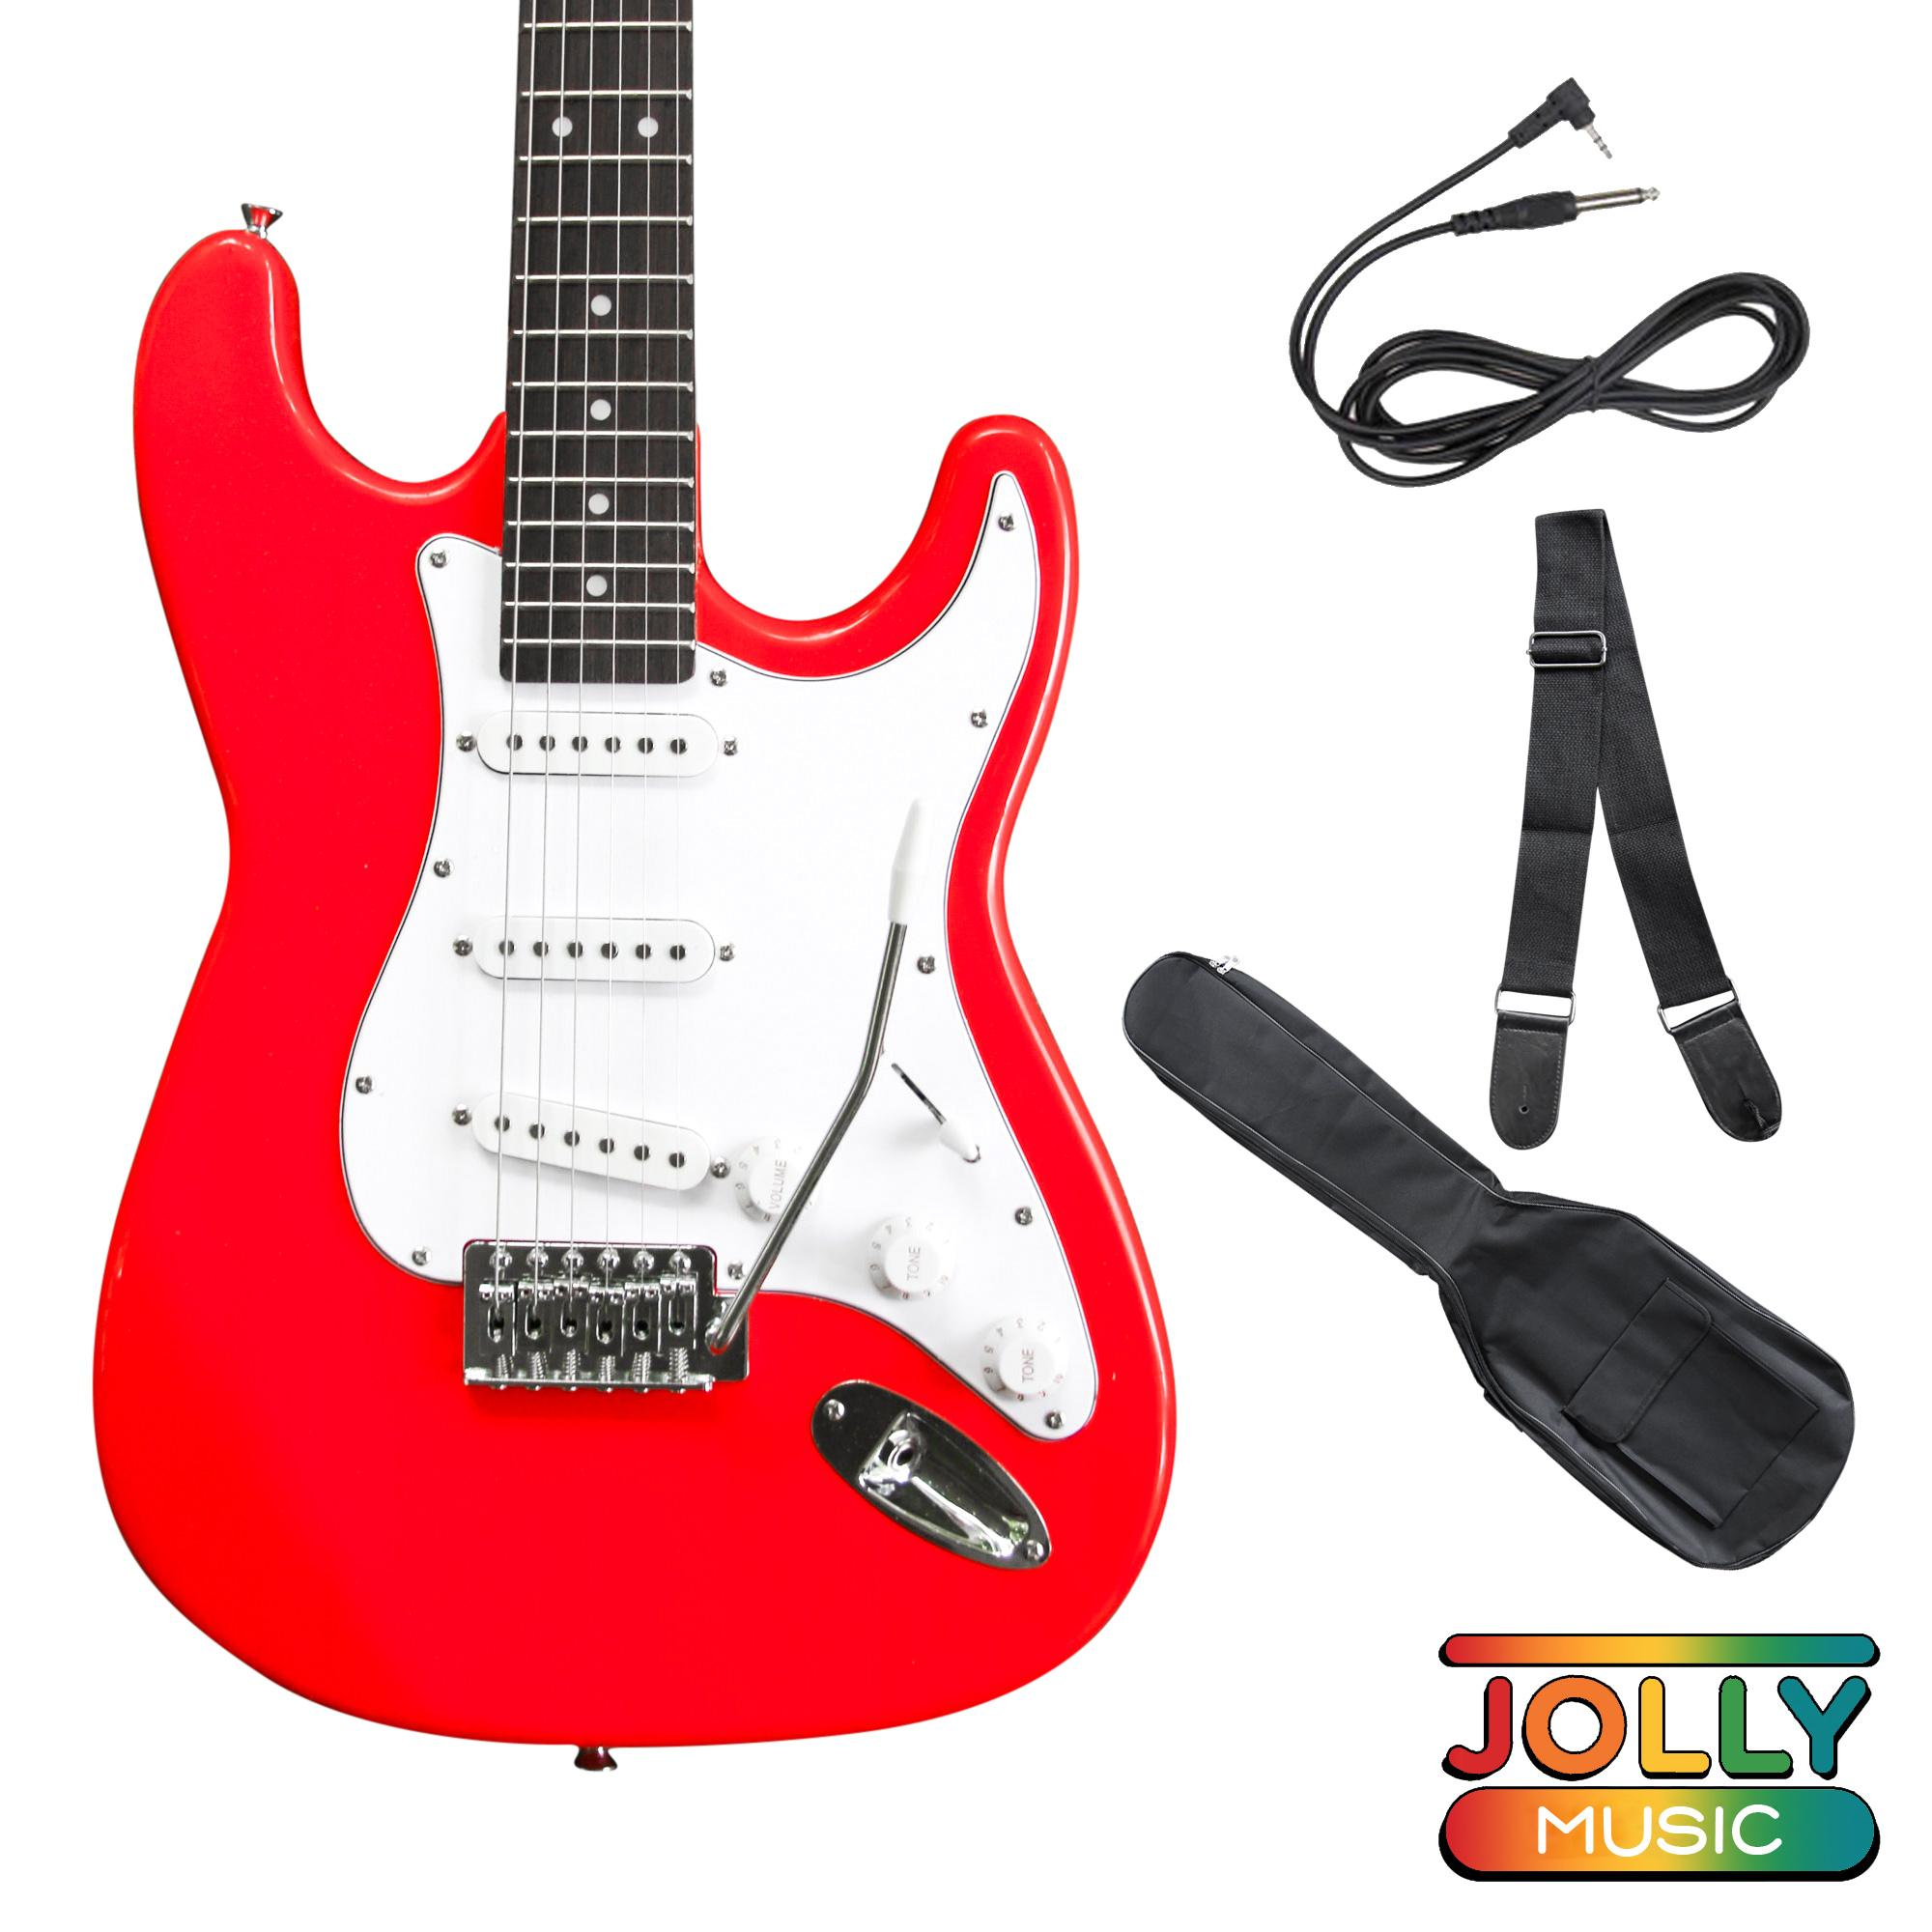 Electric Guitar For Sale Rock Band Guitars Best Seller Prices Basic Circuits Part 1 Pickups Deviser Stratocaster L G1 With Strap Cable And Gigbag